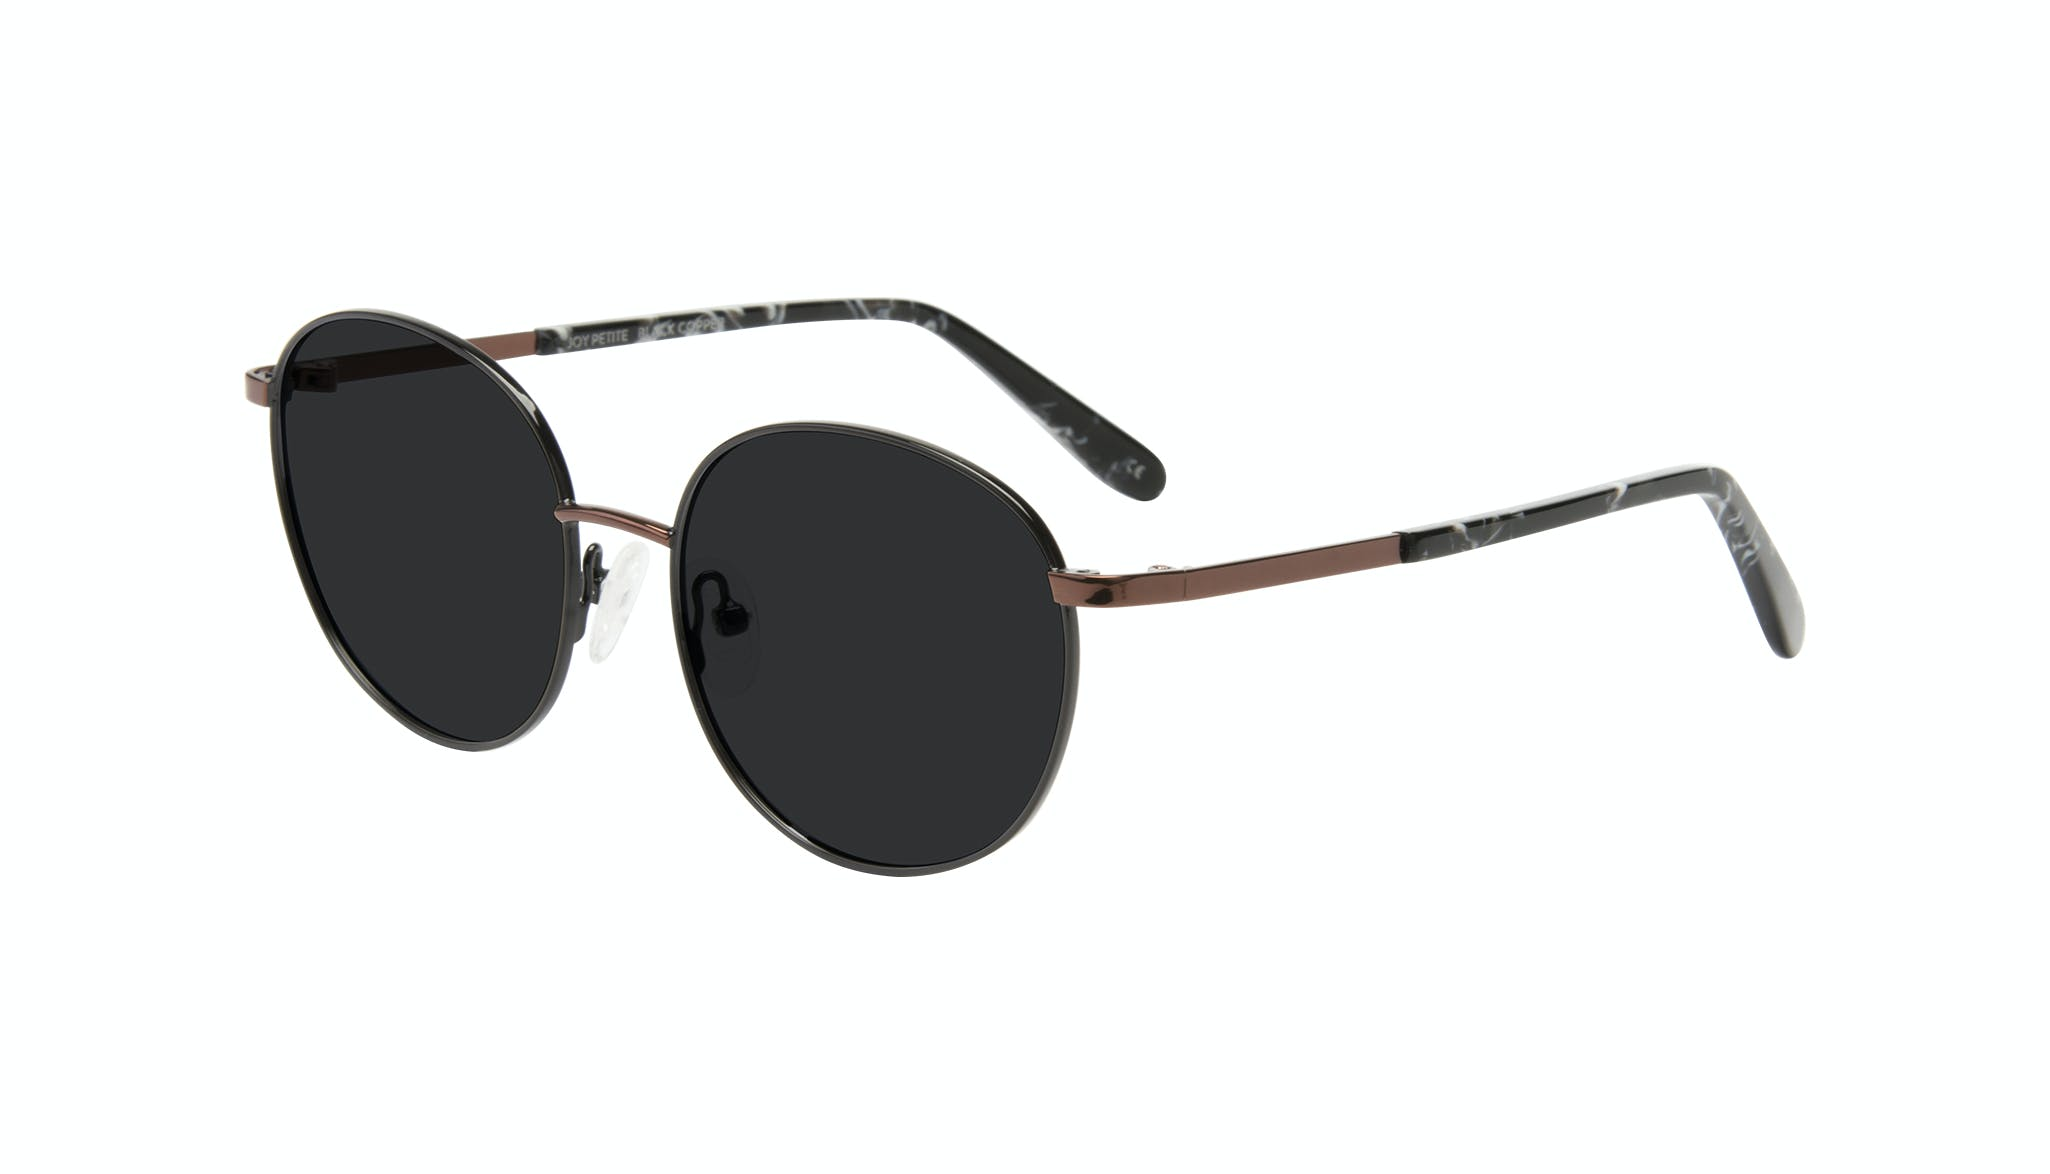 Affordable Fashion Glasses Round Sunglasses Women Joy Petite Black Copper Tilt